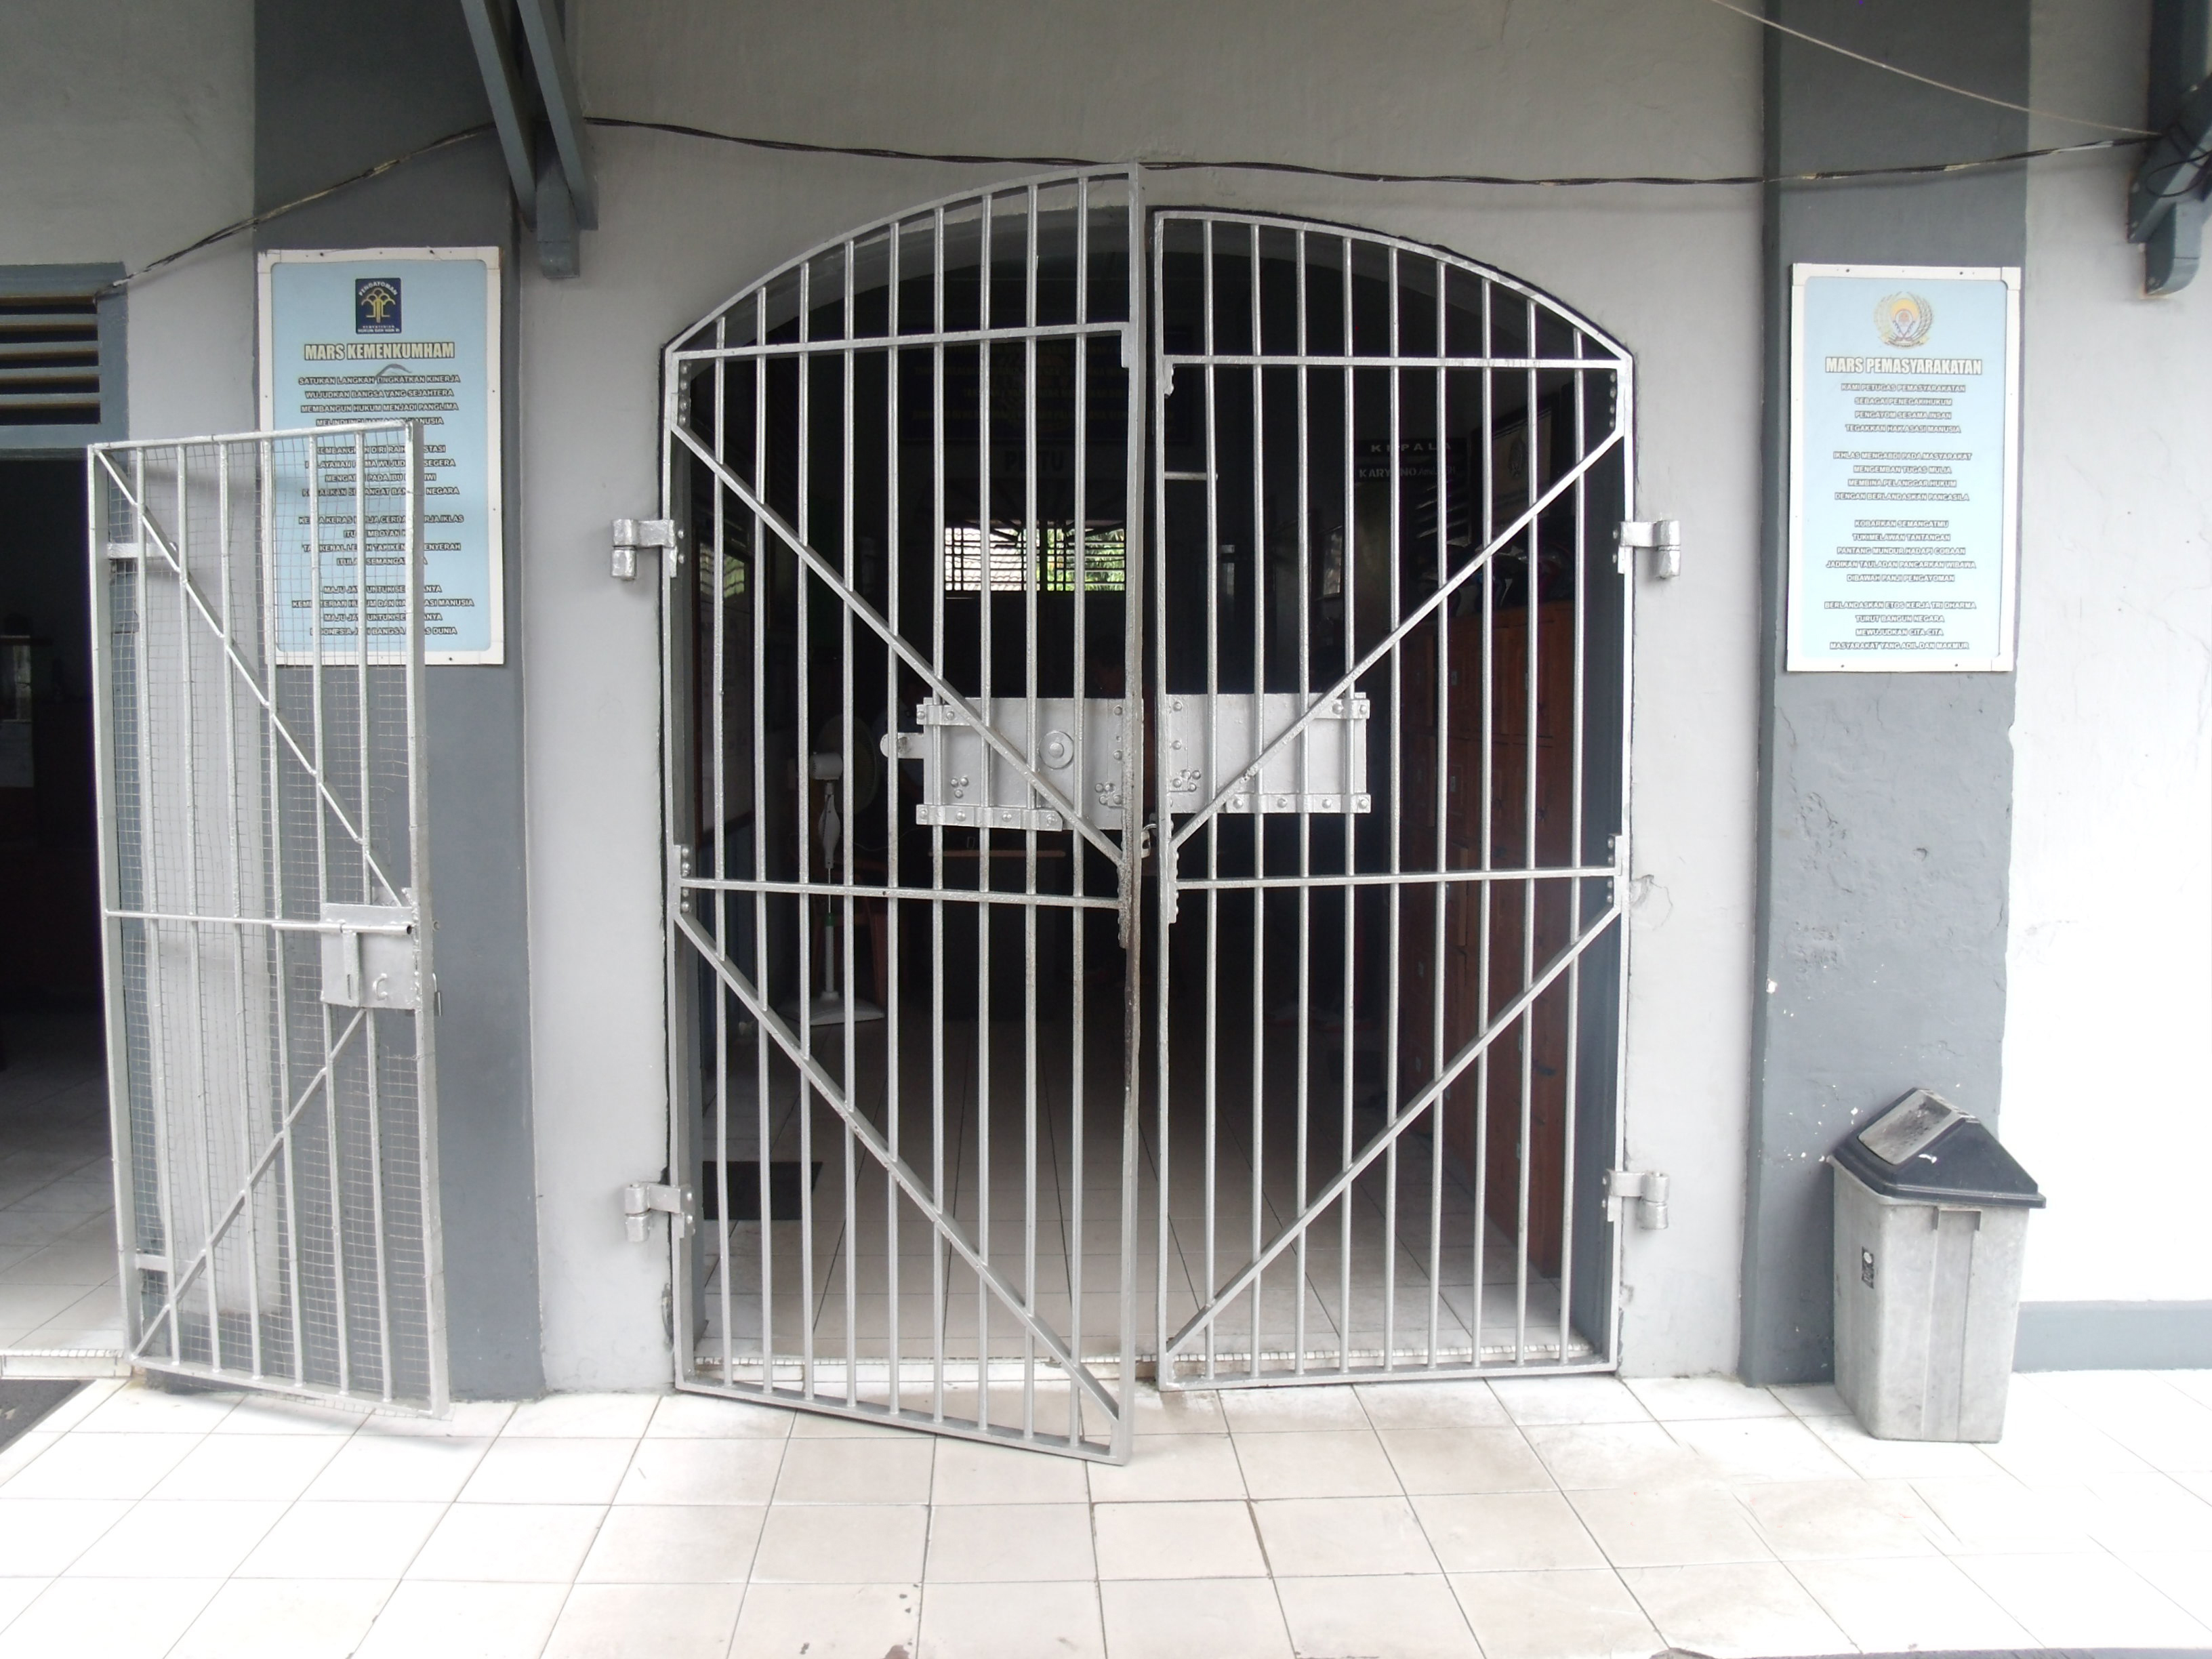 The C& And Jail At Muntok The Palembang And Muntok & Cell Door - Sanfranciscolife